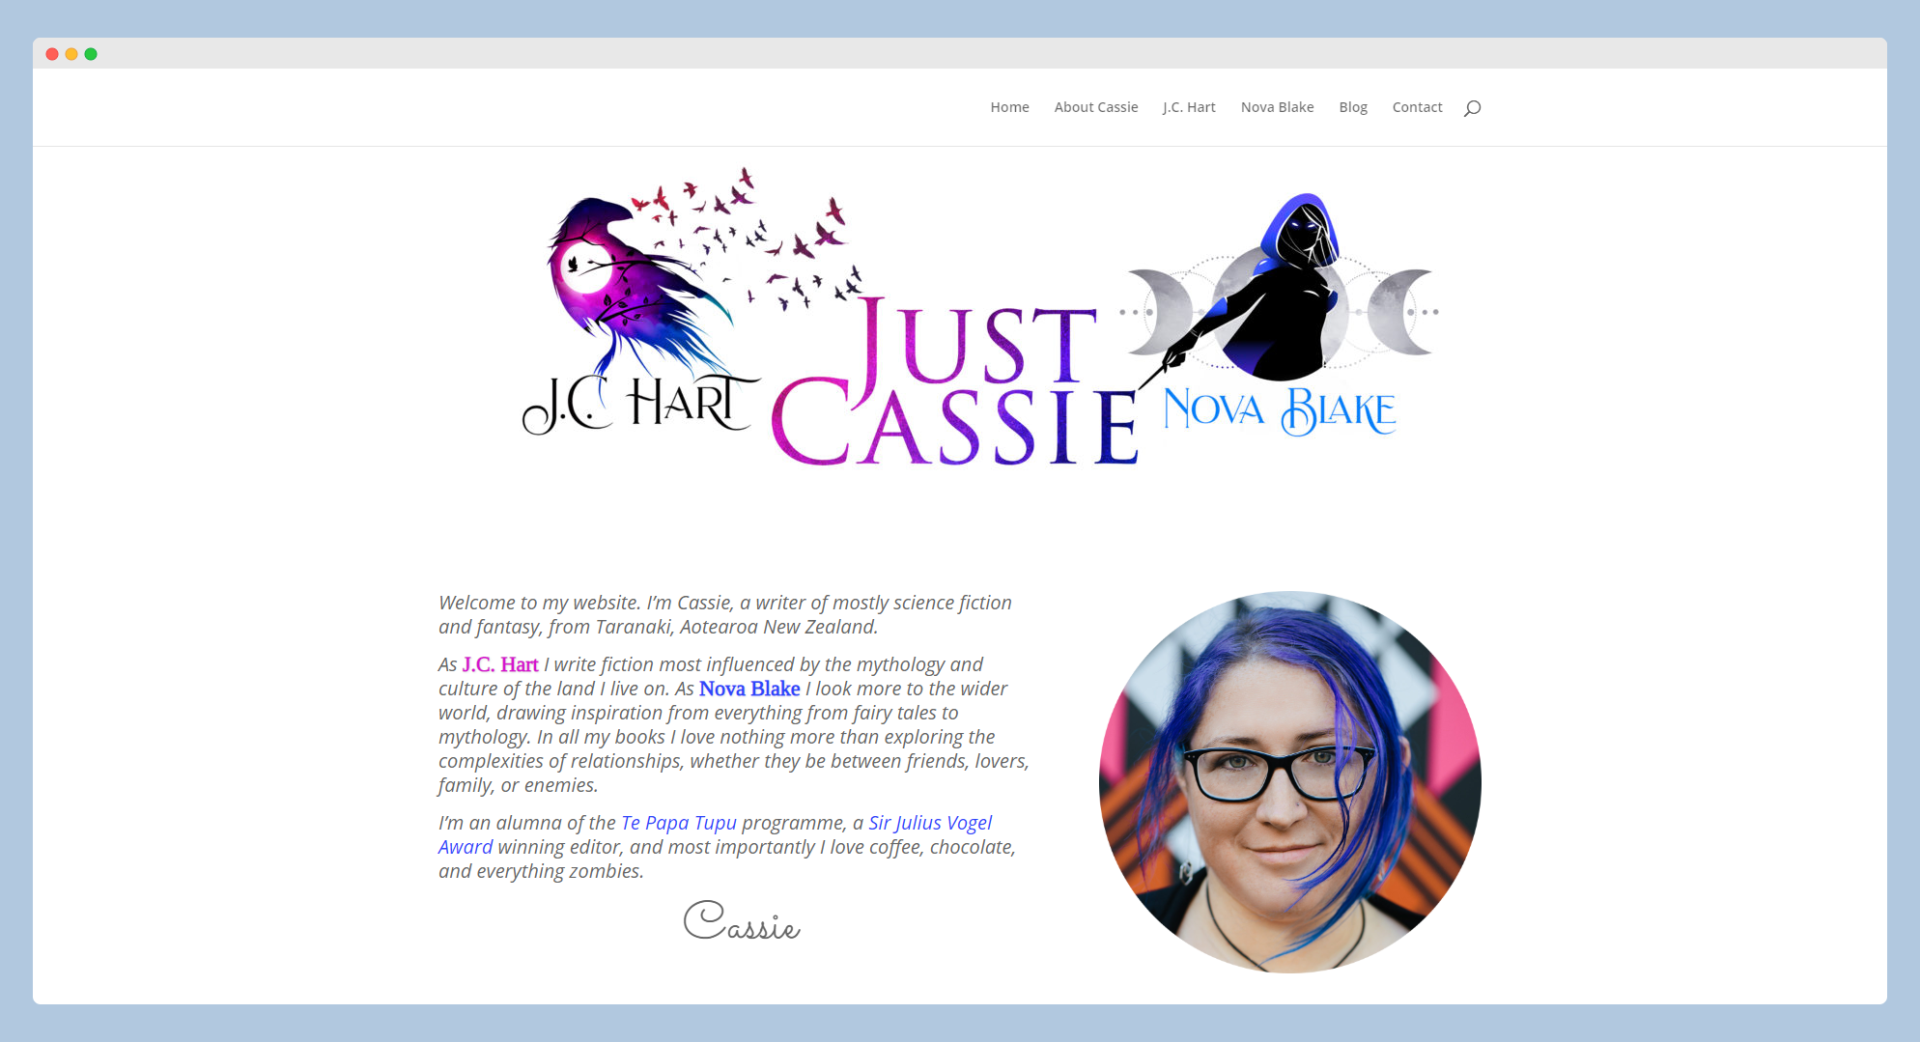 Screenshot of Just Cassie's website